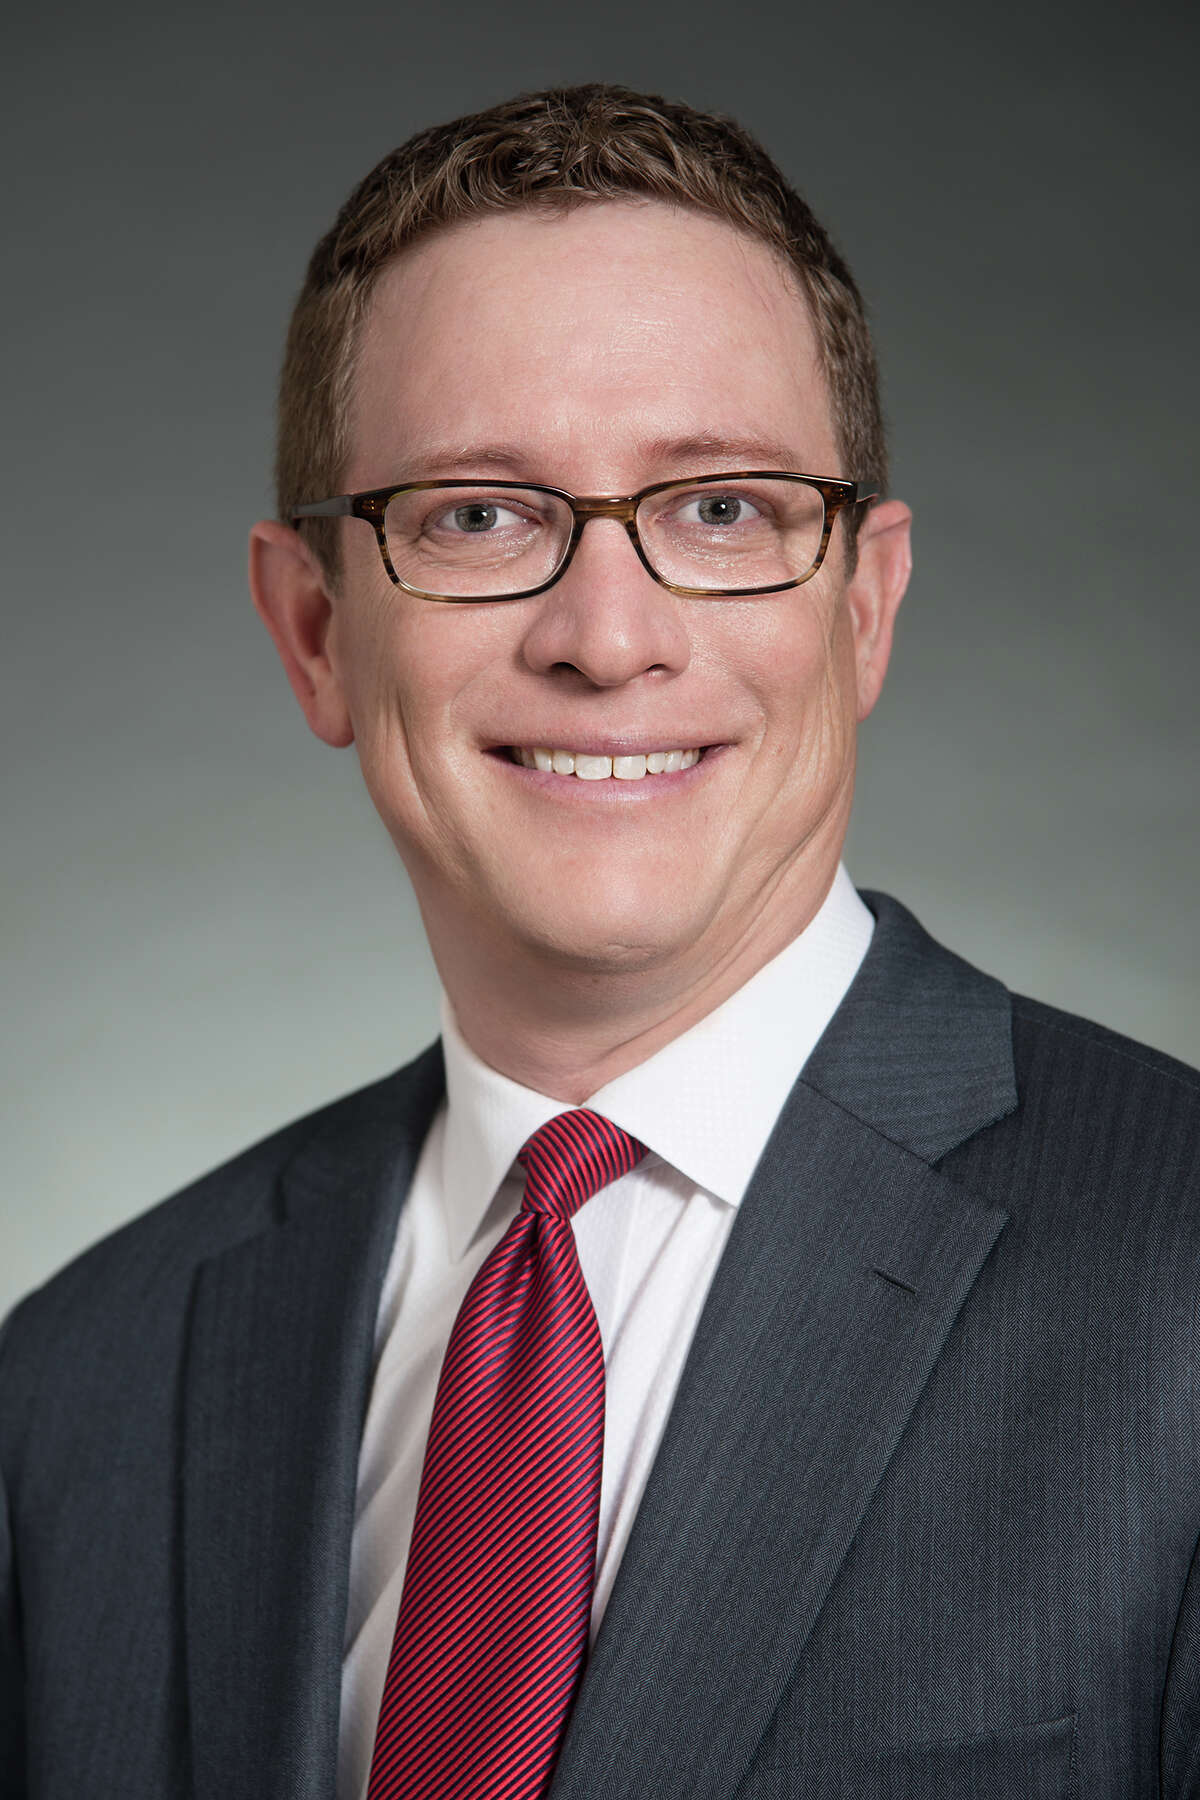 Memorial Hermann Health System has hired Daniel Styf as its new senior vice president and CEO to lead its Memorial Hermann Health Plans business.